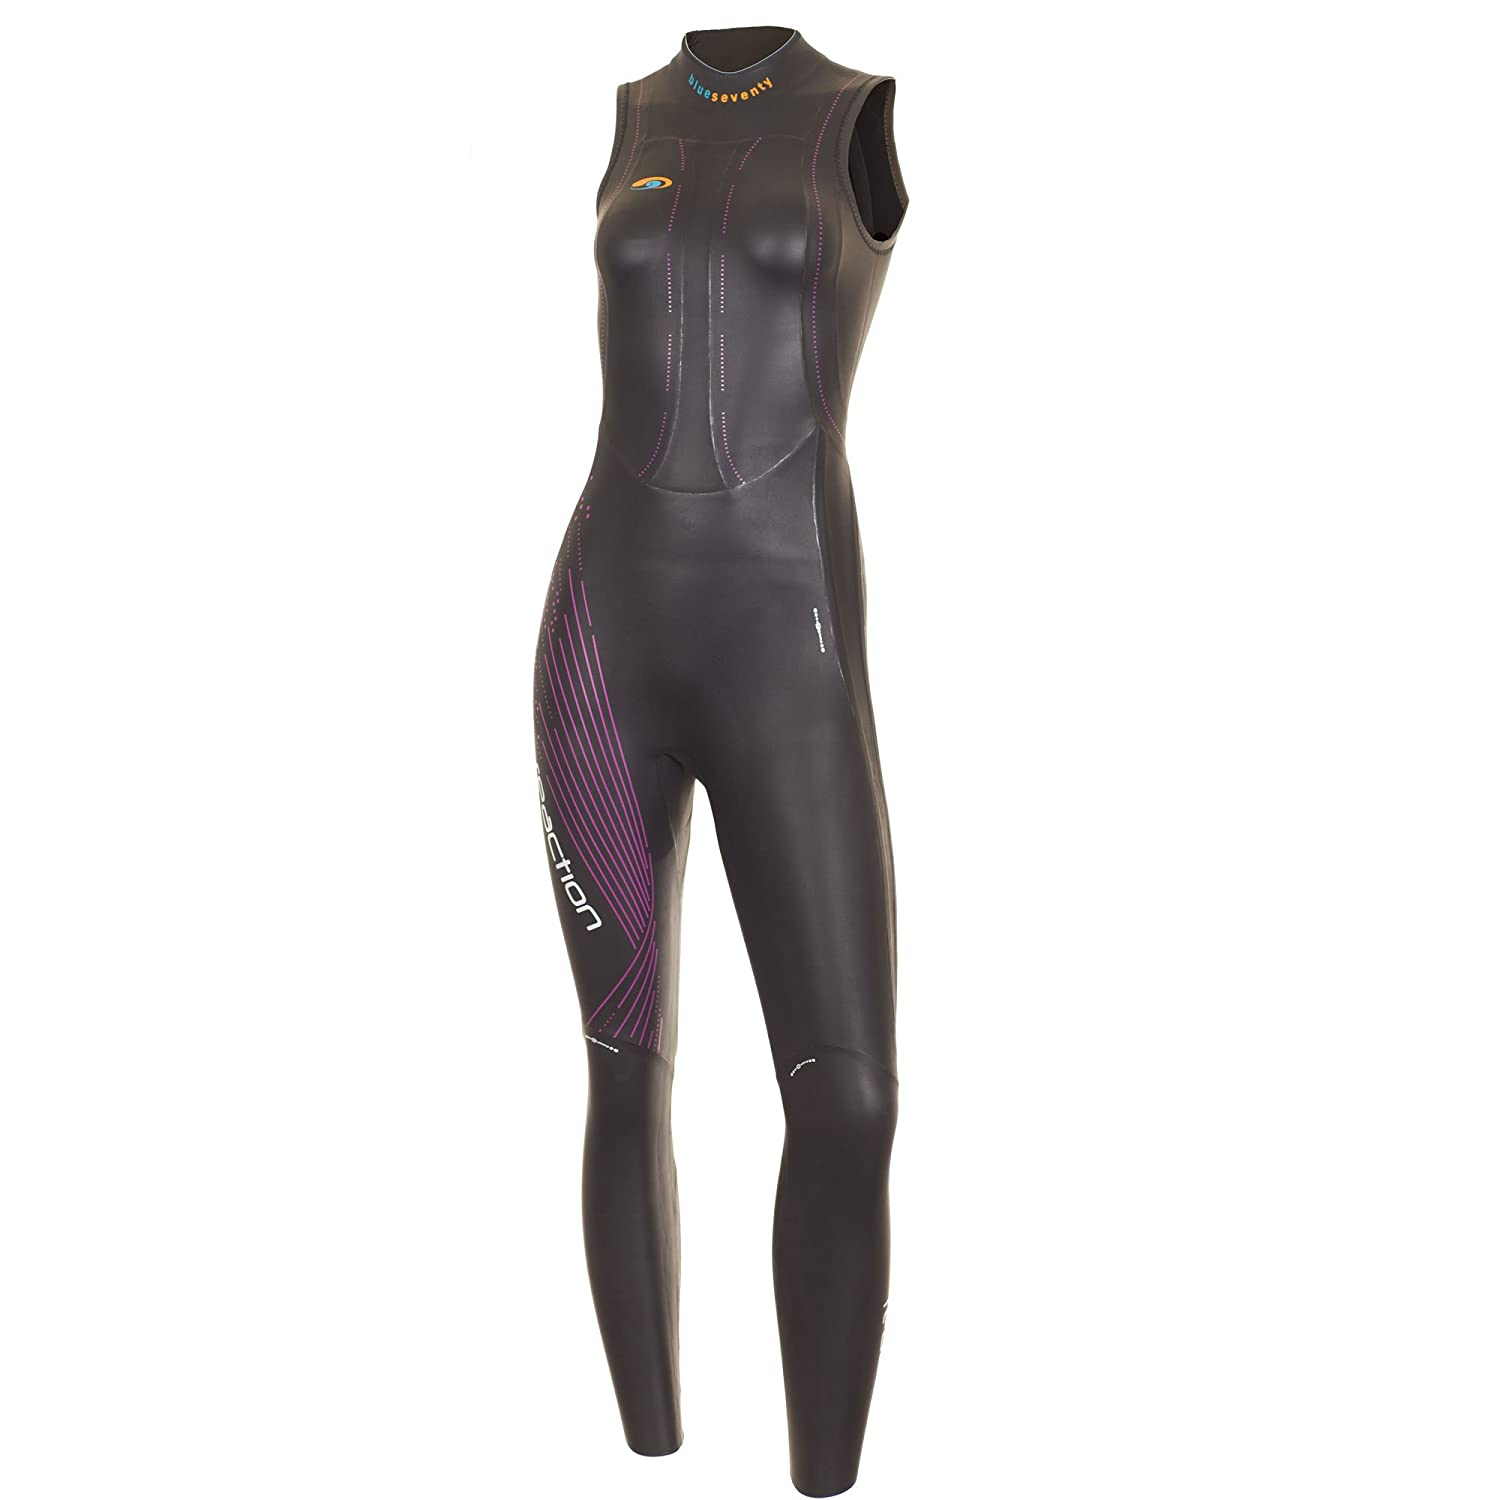 355c64039a57 Amazon.com: blueseventy Women's Reaction Sleeveless Triathlon Wetsuit:  Sports & Outdoors